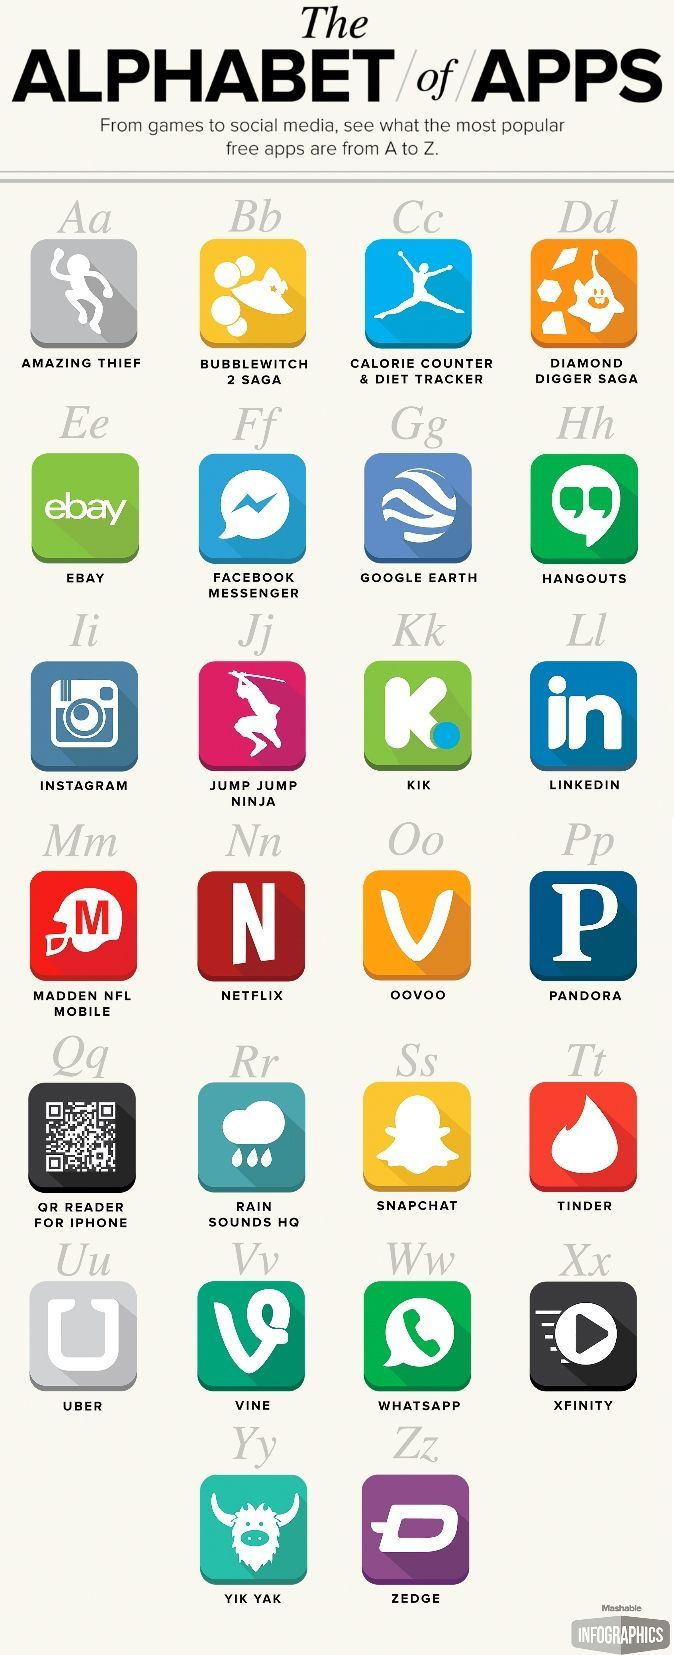 Looking for a helpful new app? We've got you covered! Here are the best free iOS and Android apps starting with each letter of the alphabet.